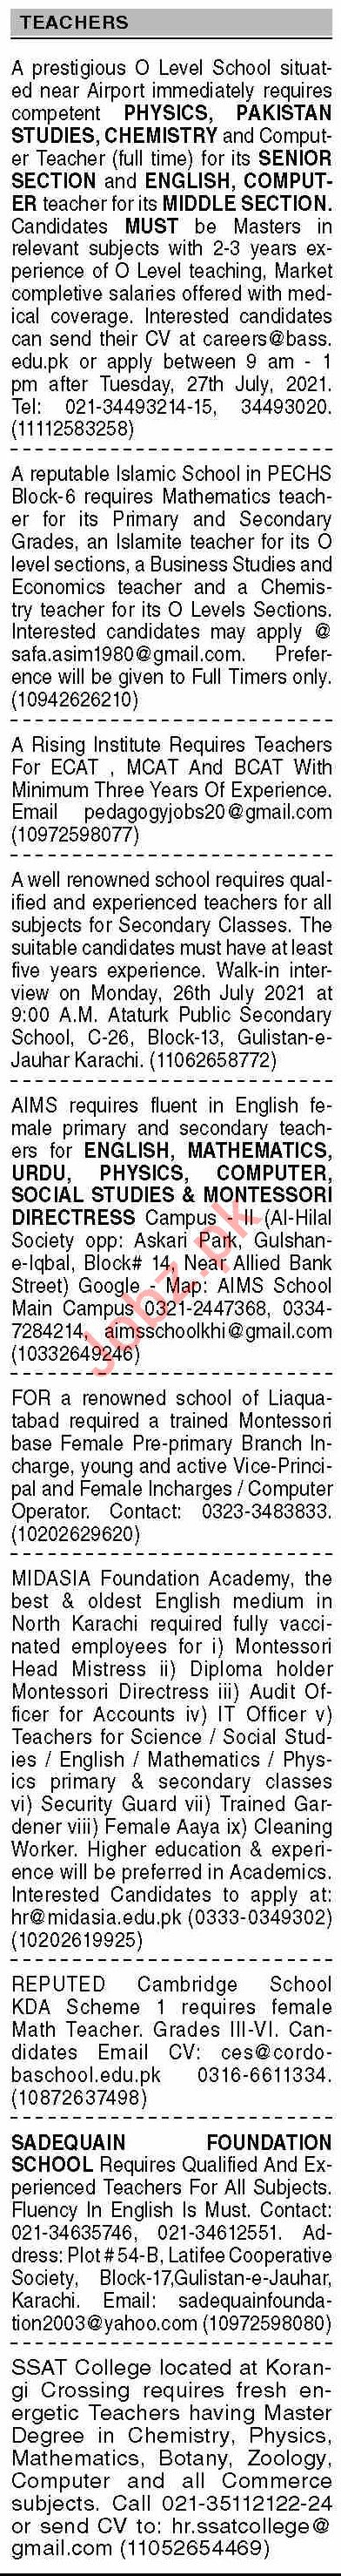 Dawn Sunday Classified Ads 25 July 2021 for Teaching Staff